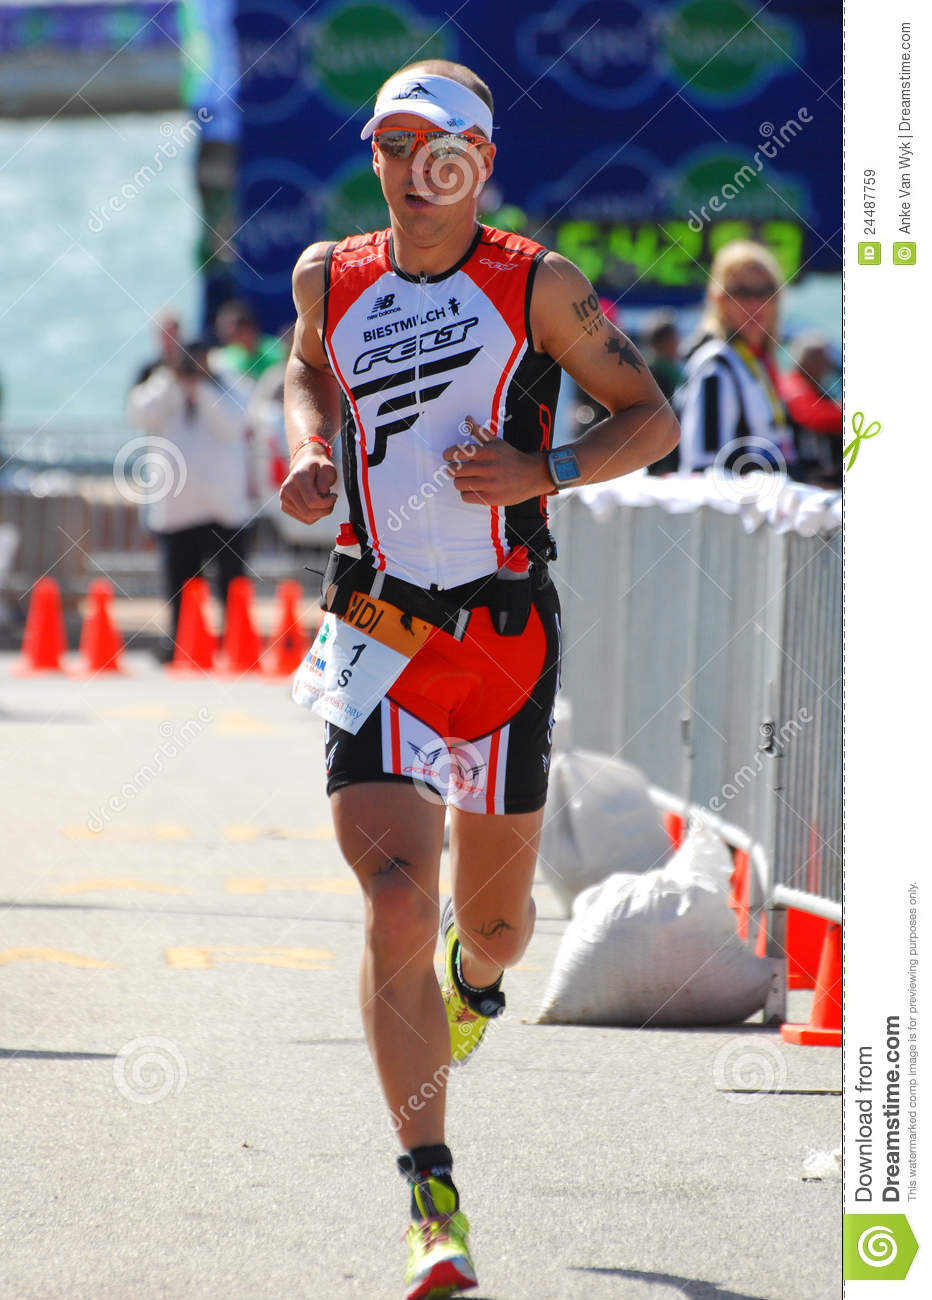 how to become a pro ironman triathlete